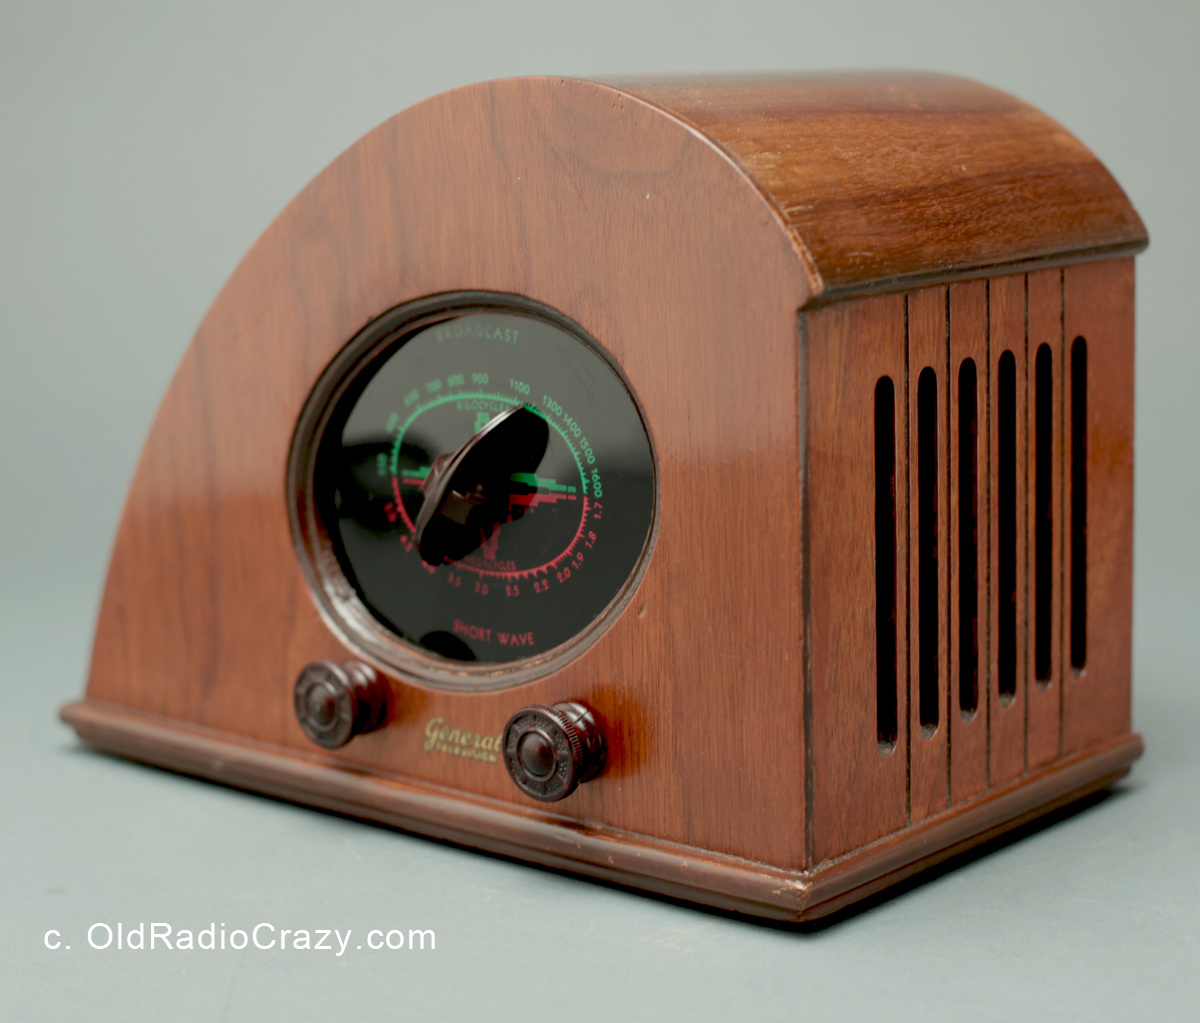 climax baby rudy art deco tube radio collectors weekly. Black Bedroom Furniture Sets. Home Design Ideas